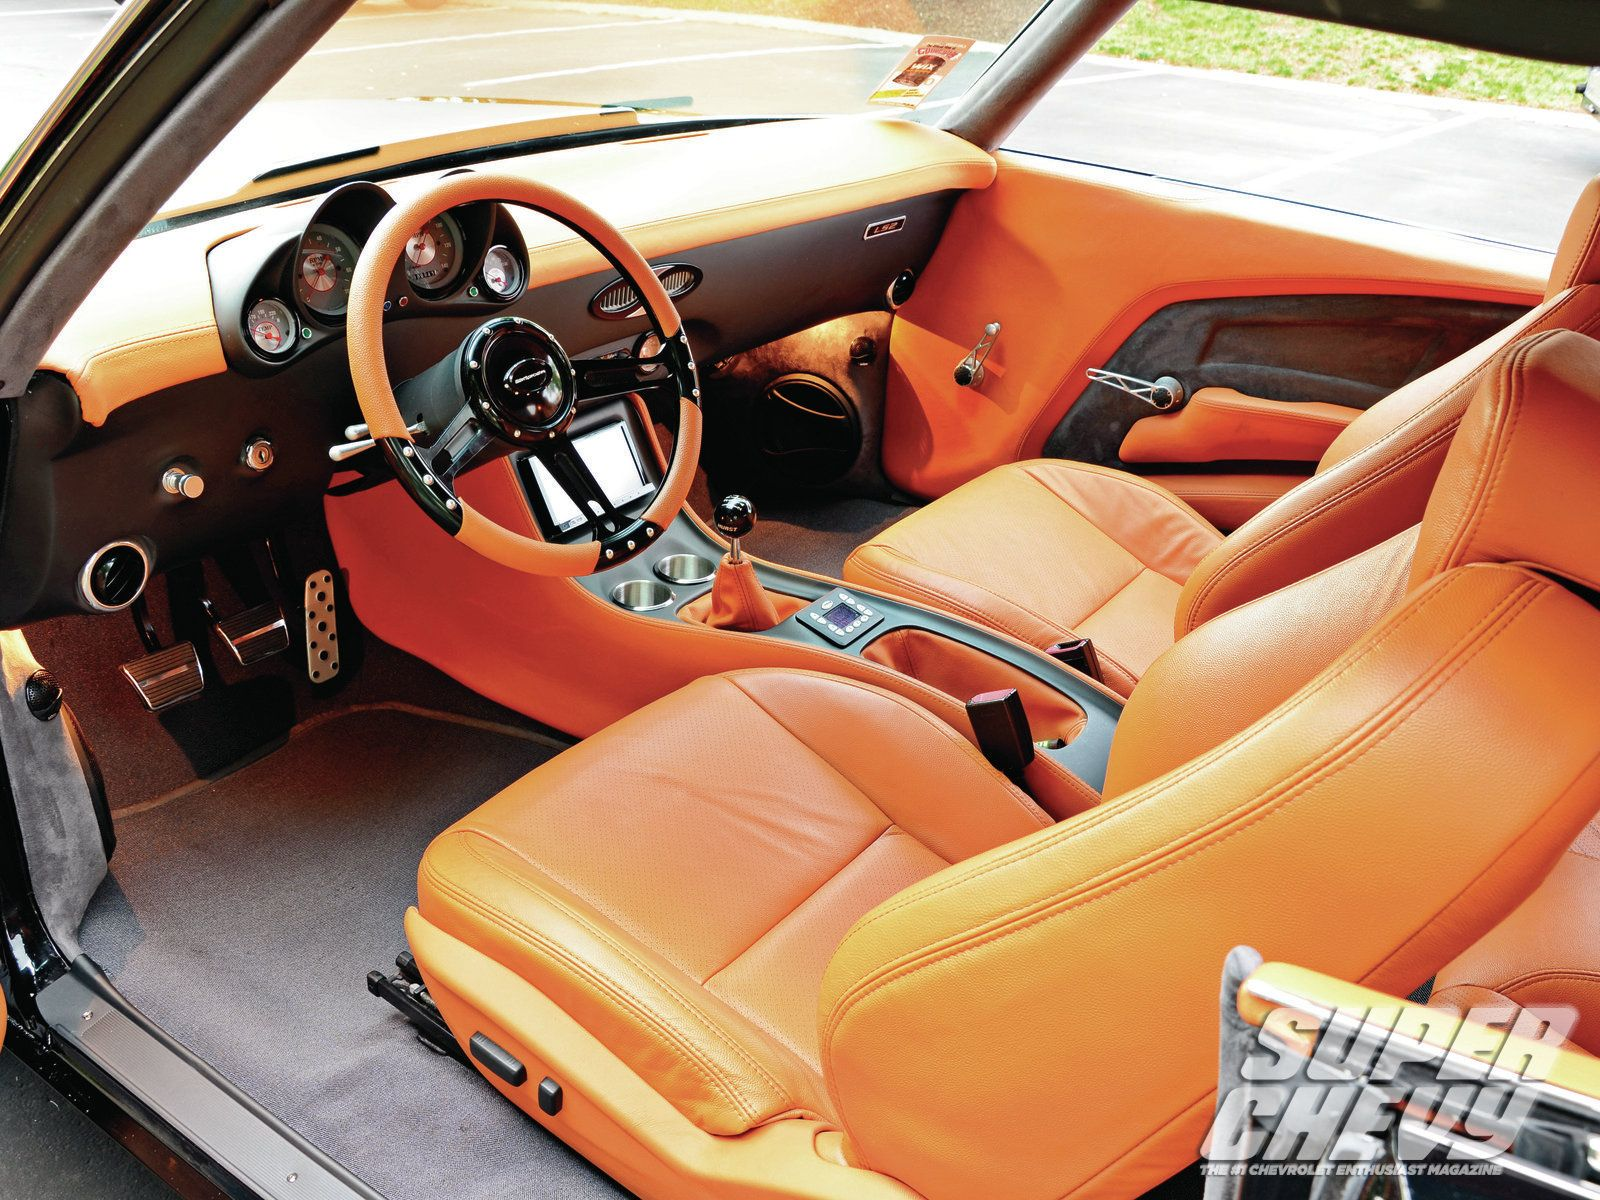 small resolution of 1970 chevrolet chevelle ss interior photo 6 custom dash and console door panels brown orange